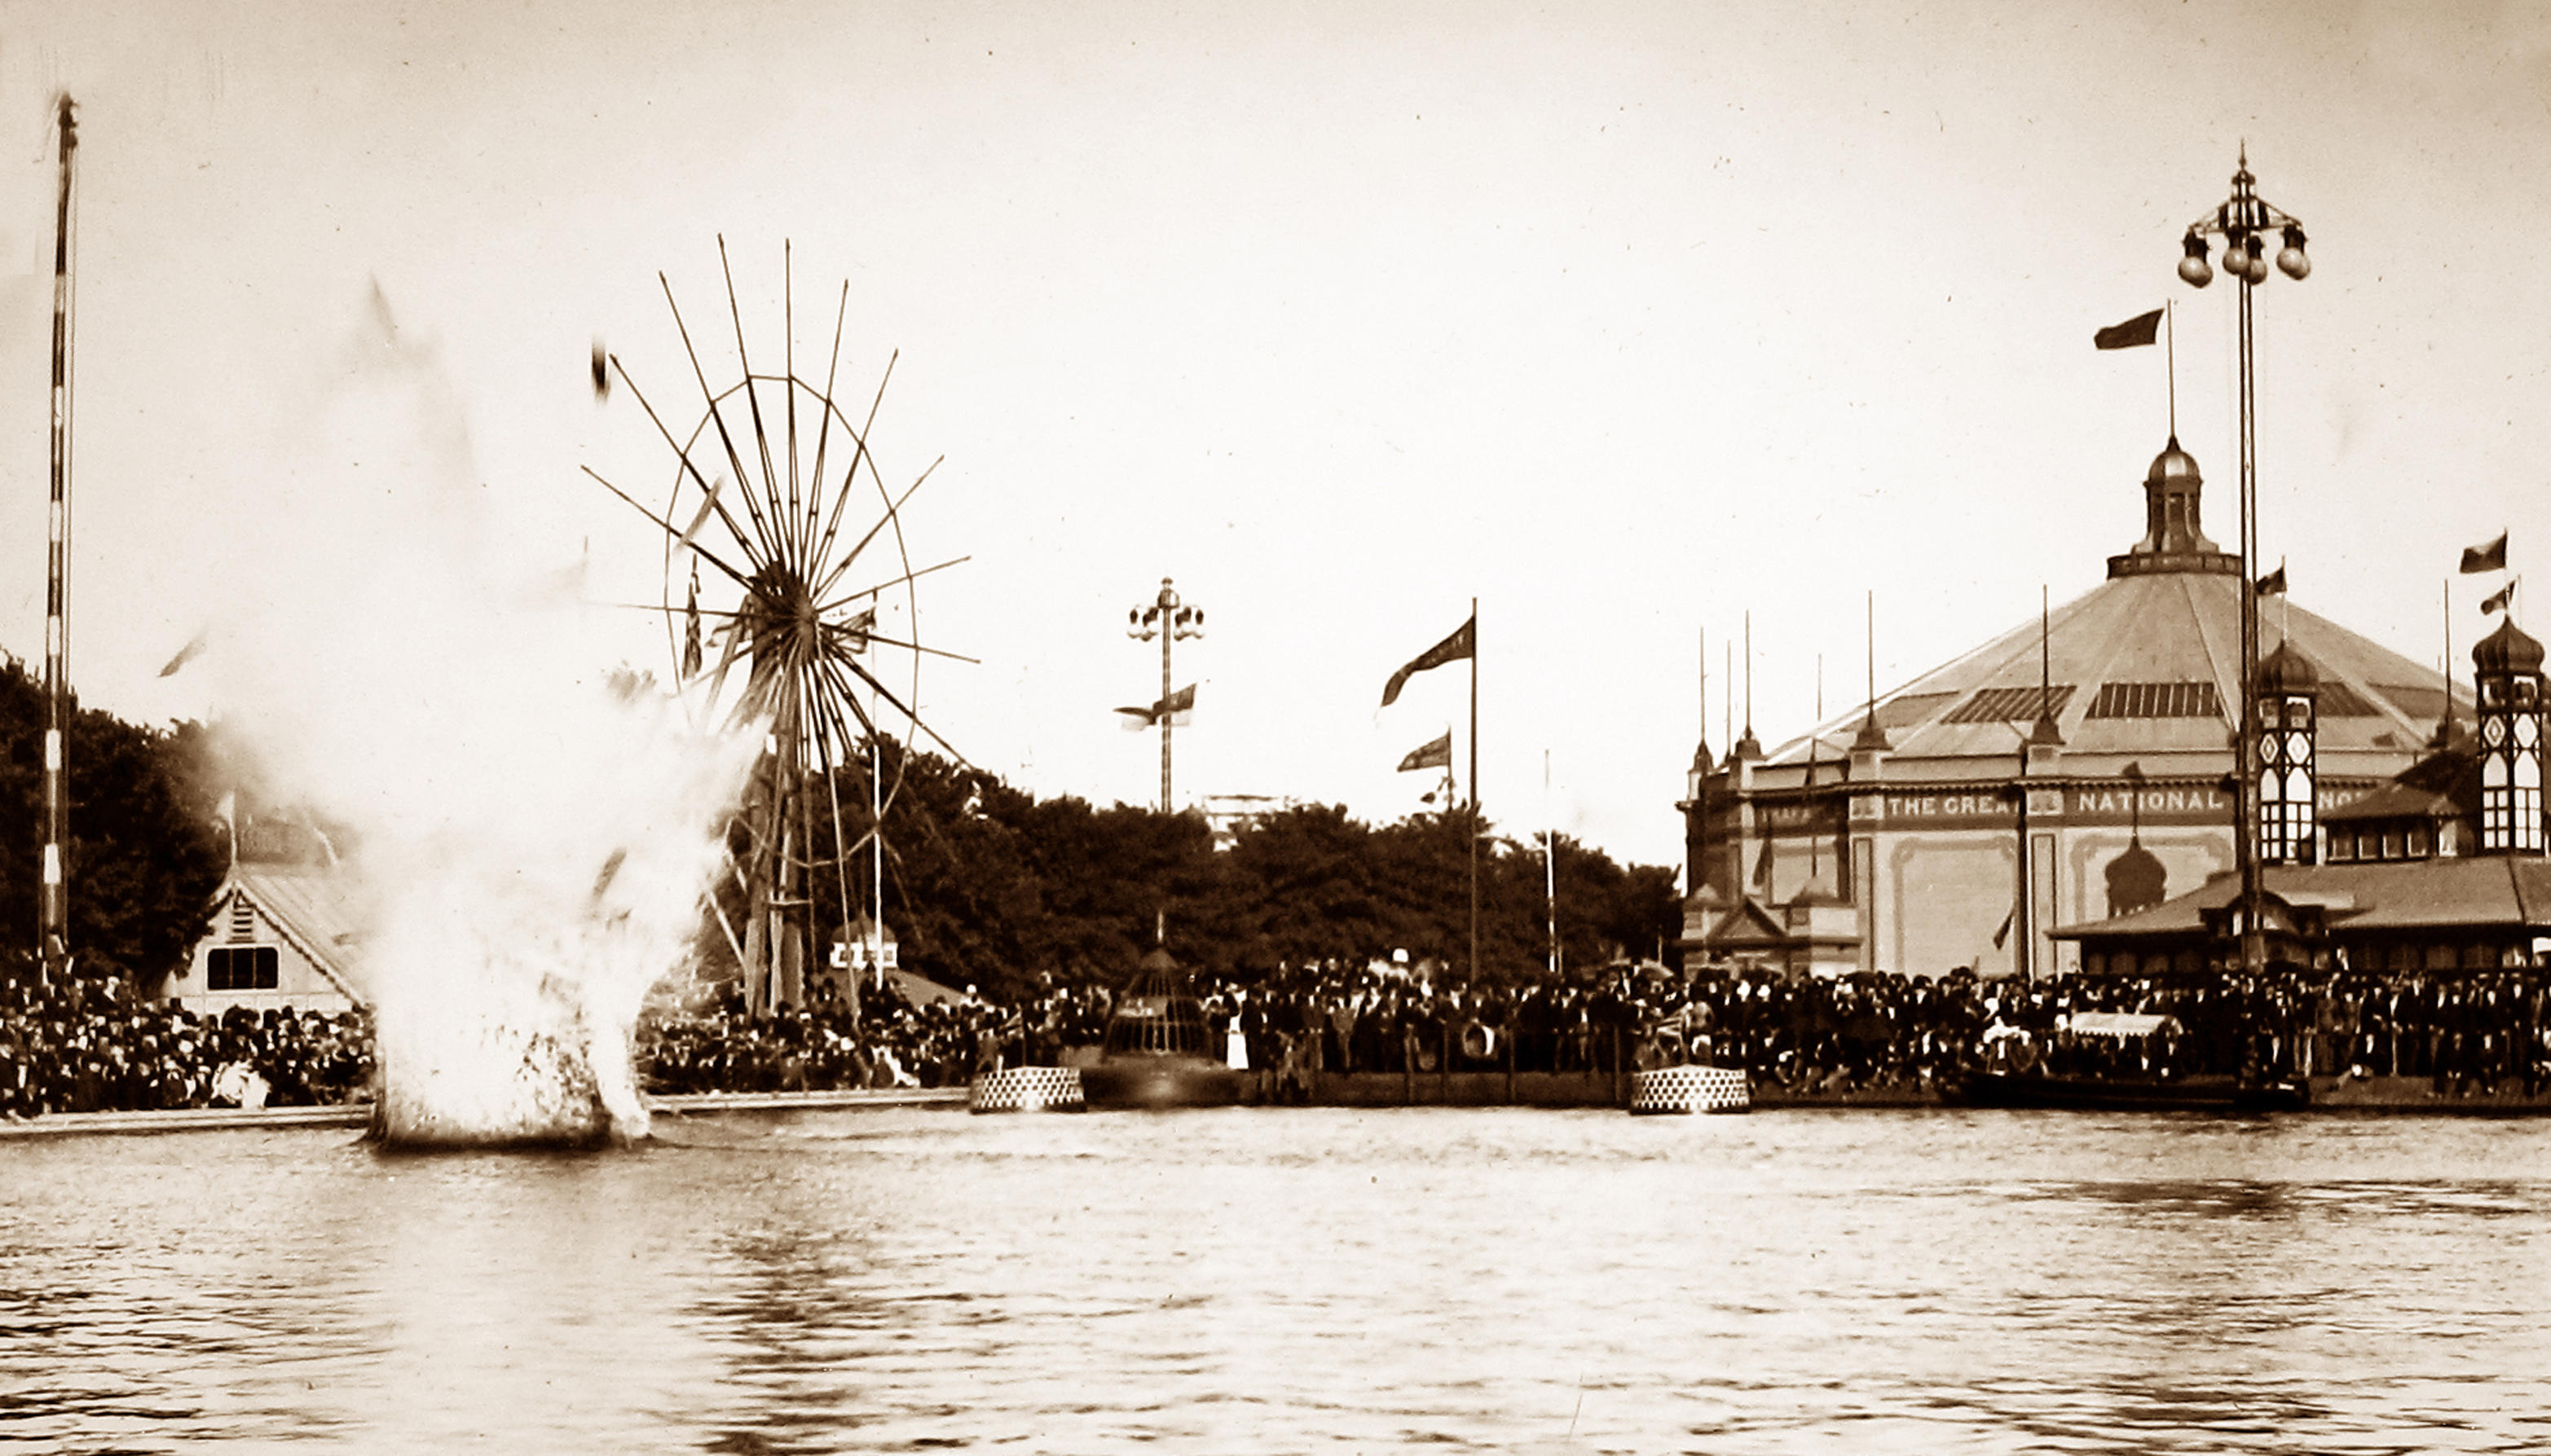 1891 - Whitehead torpedo demonstration. An explosion on the water demonstrating torpedos to stands of onlookers.